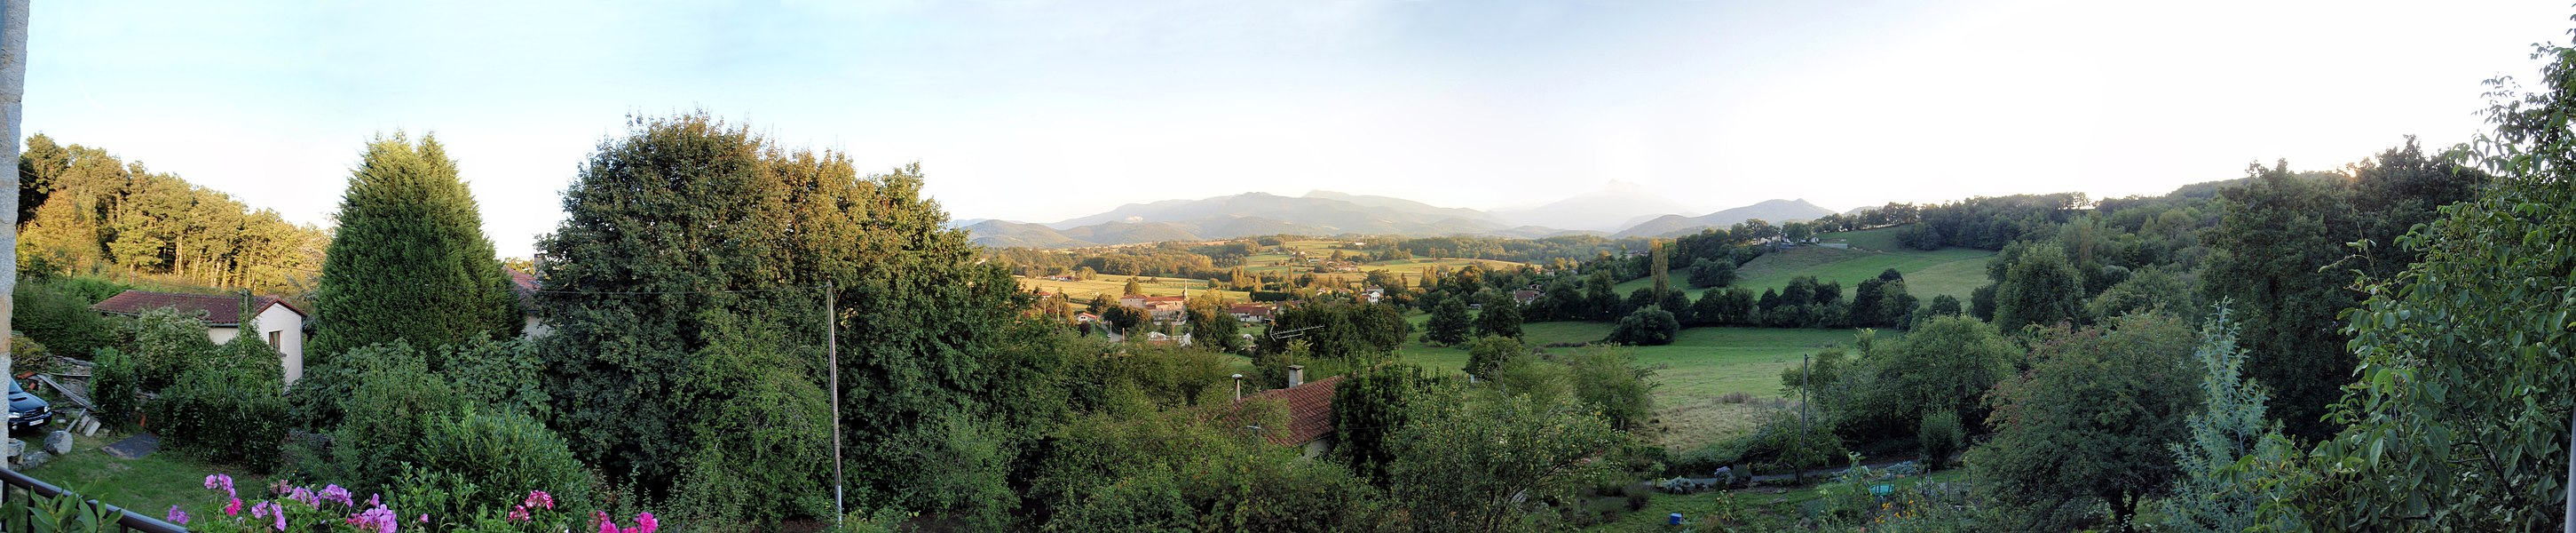 Panorama of en:Ganties, in the en:Haute-Garonne, in France. Panorama is a composite of 17 photos, taken from a balcony, overlooking the village. The Pyrenees mountains are in the background. View is looking south towards the mountains (and Spain behind them).